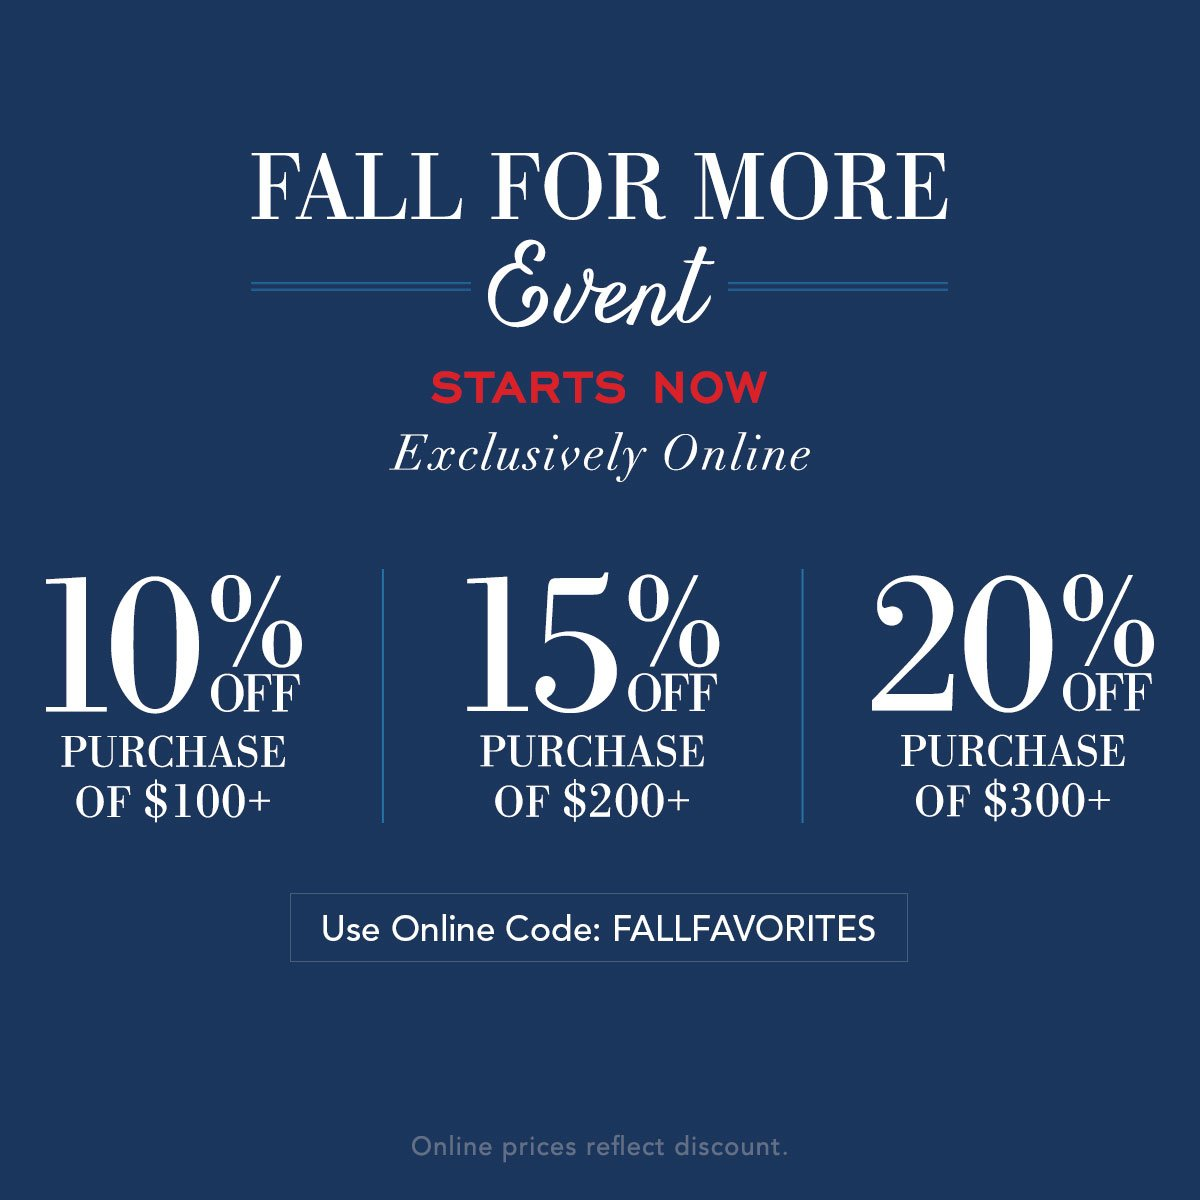 Our fall event starts now! Save up to 20% off with online code: FALLFAVORITES Shop now: https://t.co/qodqGcWSGe https://t.co/AK1wWSttof